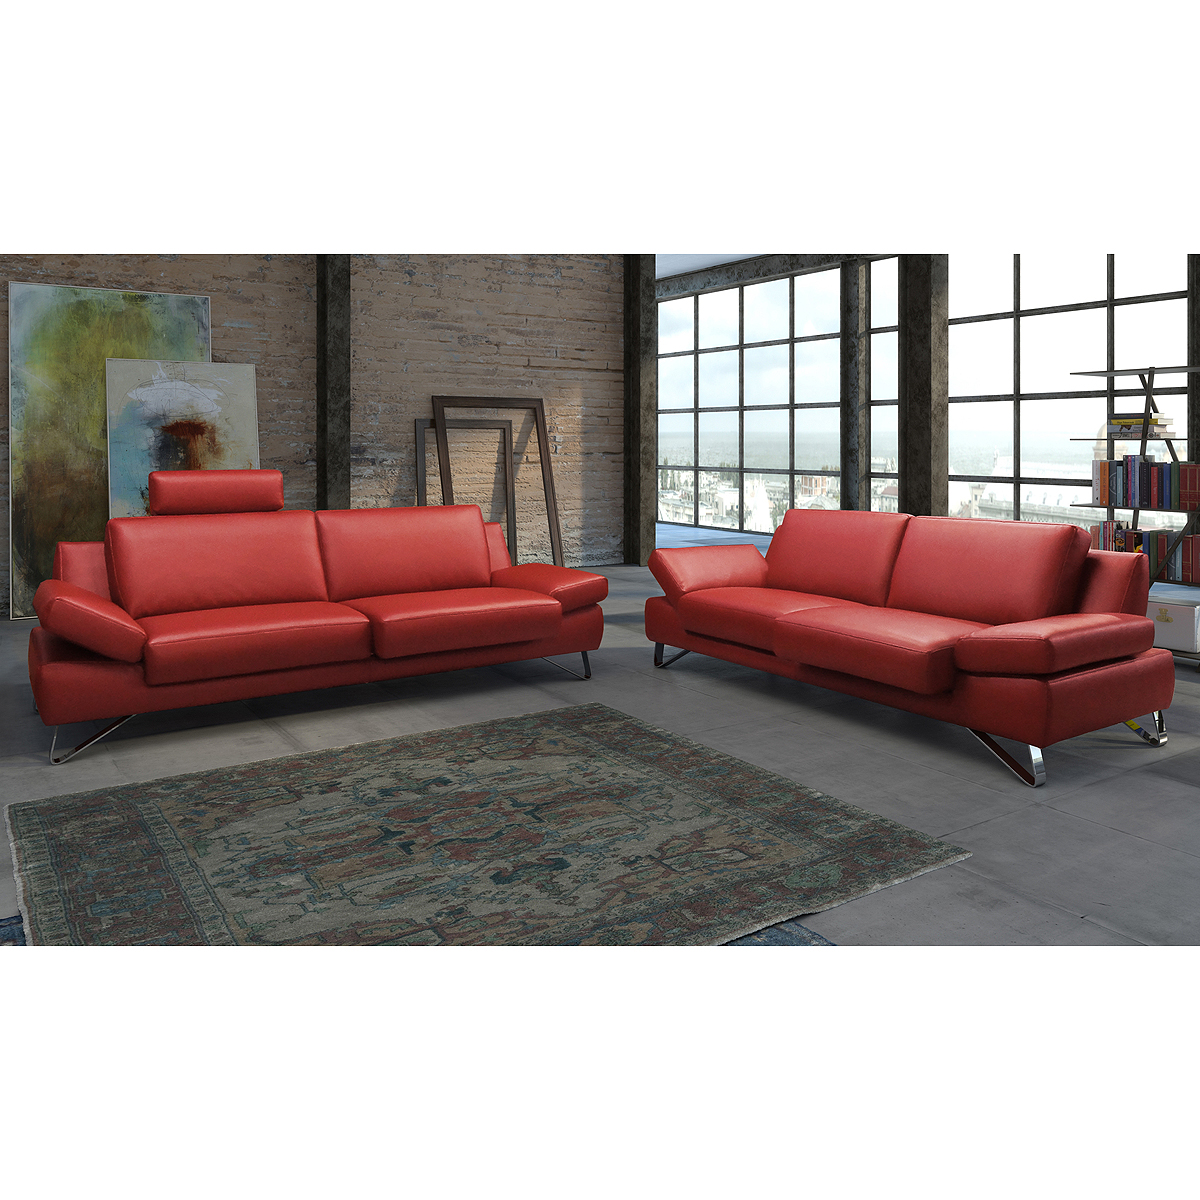 sofagarnitur finest sofa garnitur polsterm bel leder kaminrot rot mit funktionen ebay. Black Bedroom Furniture Sets. Home Design Ideas